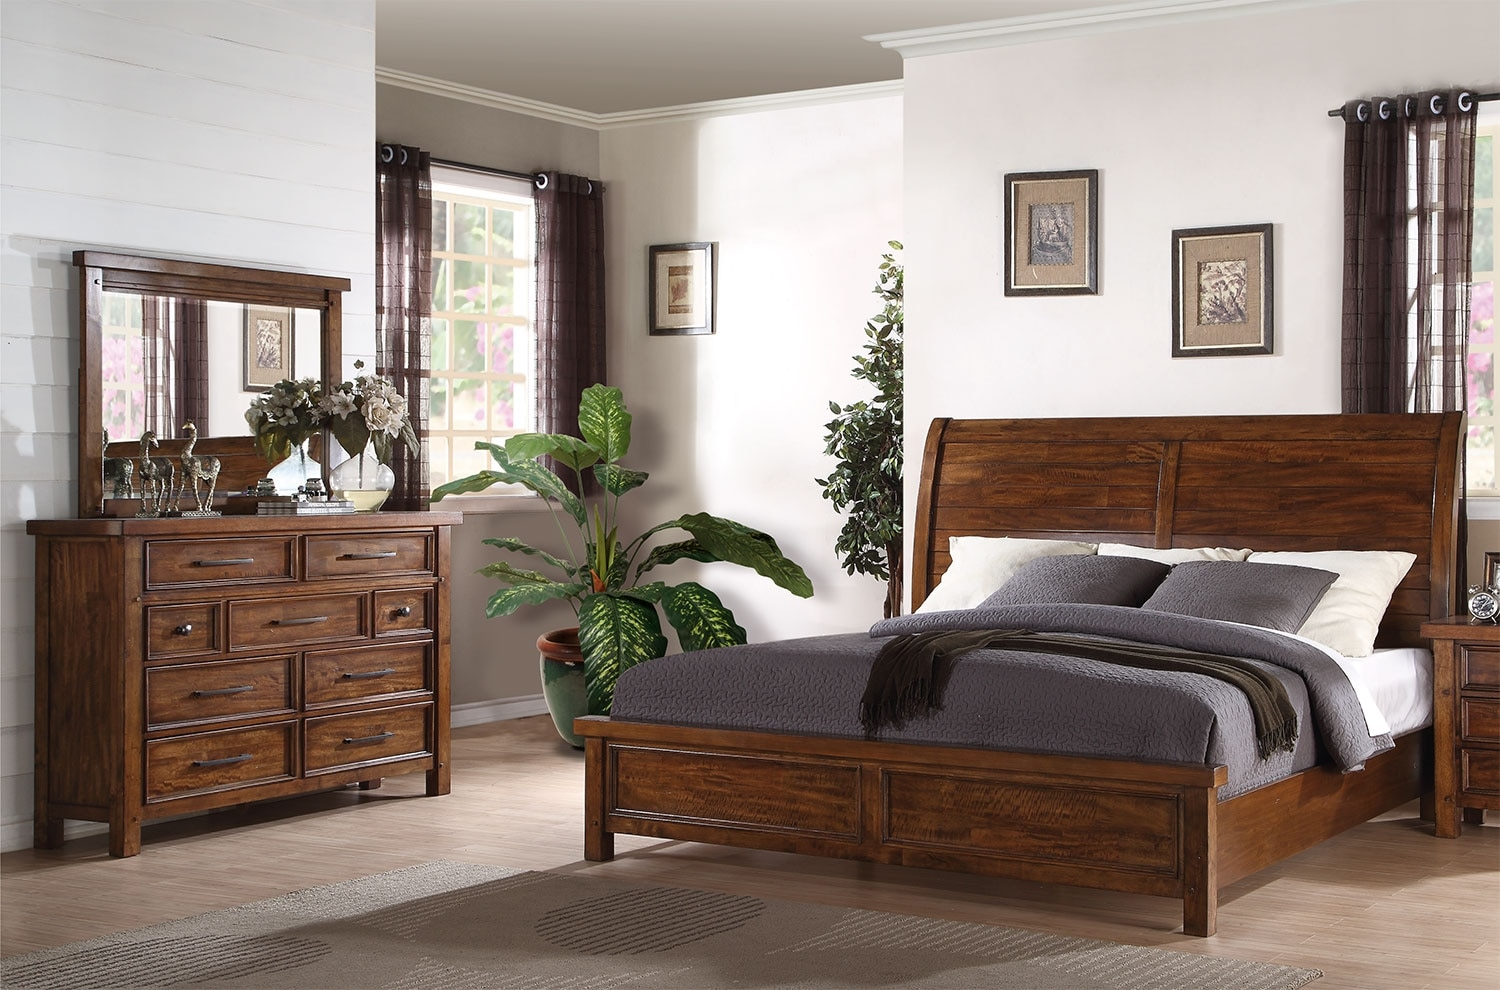 Bedroom Furniture - Sonoma 5-Piece King Bedroom Package – Medium Brown